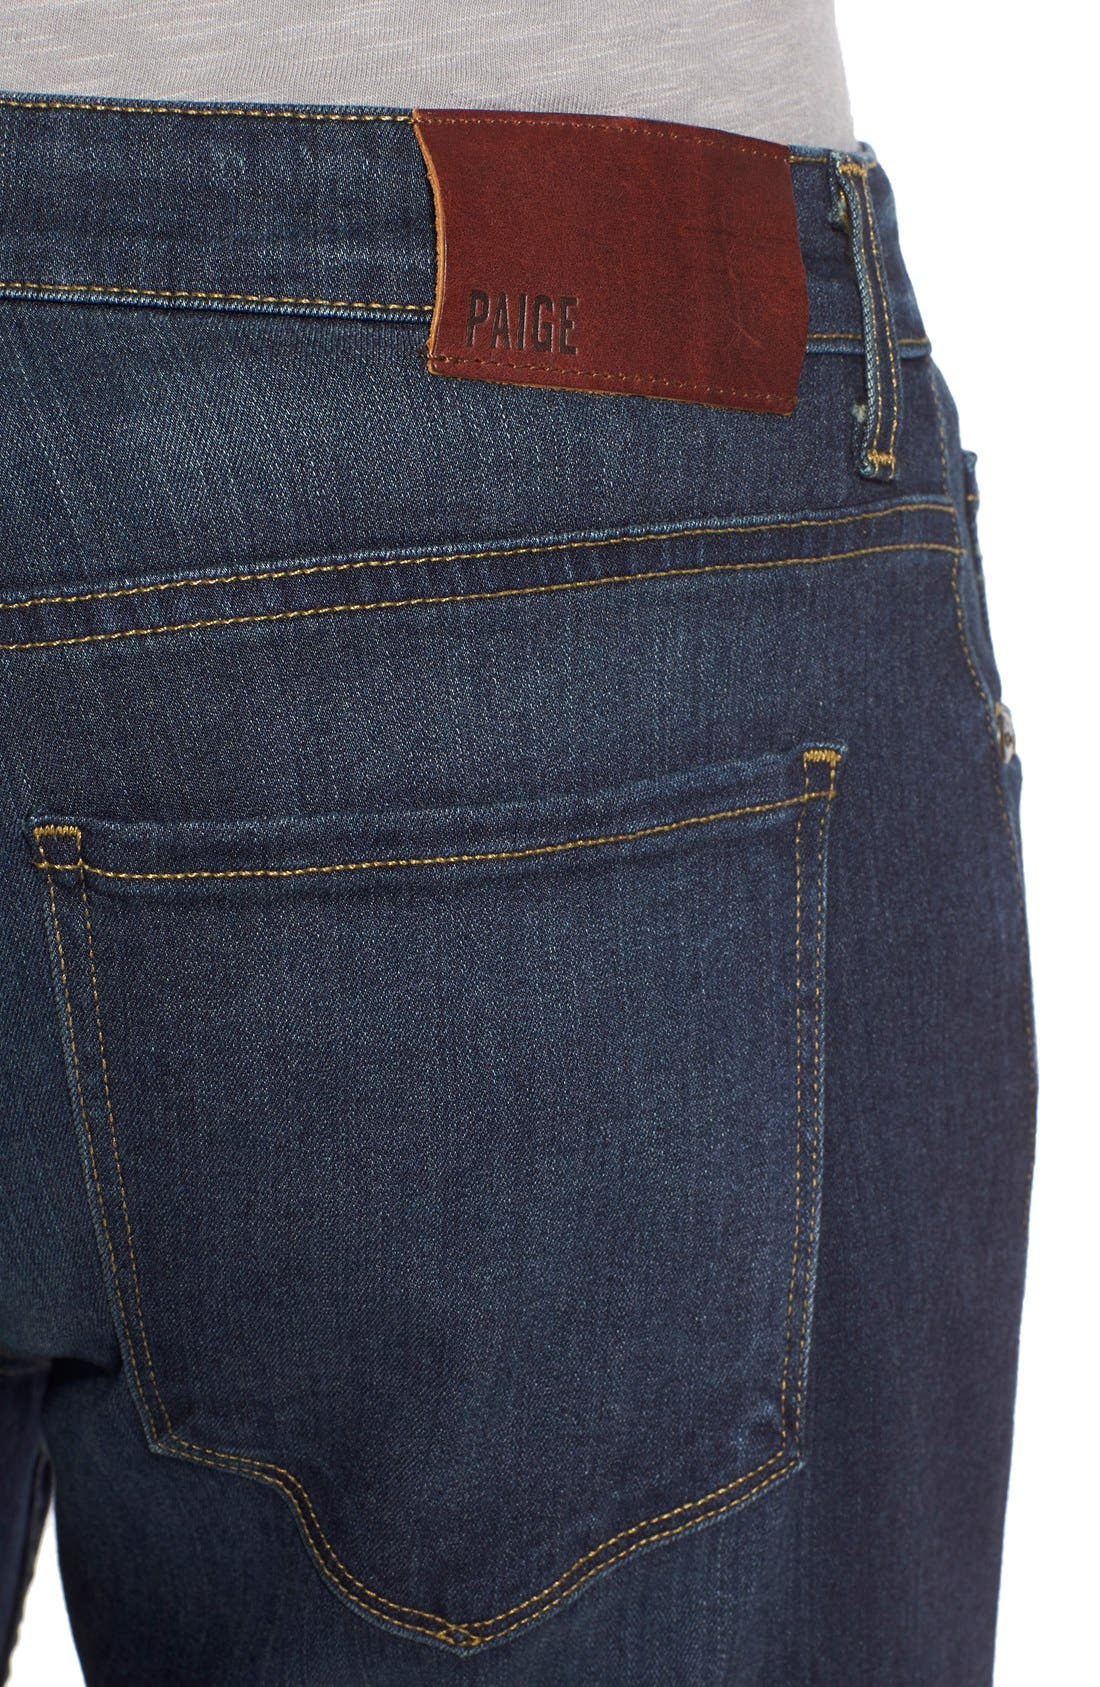 'Normandie' Straight Leg Jeans,                             Alternate thumbnail 4, color,                             RIGBY